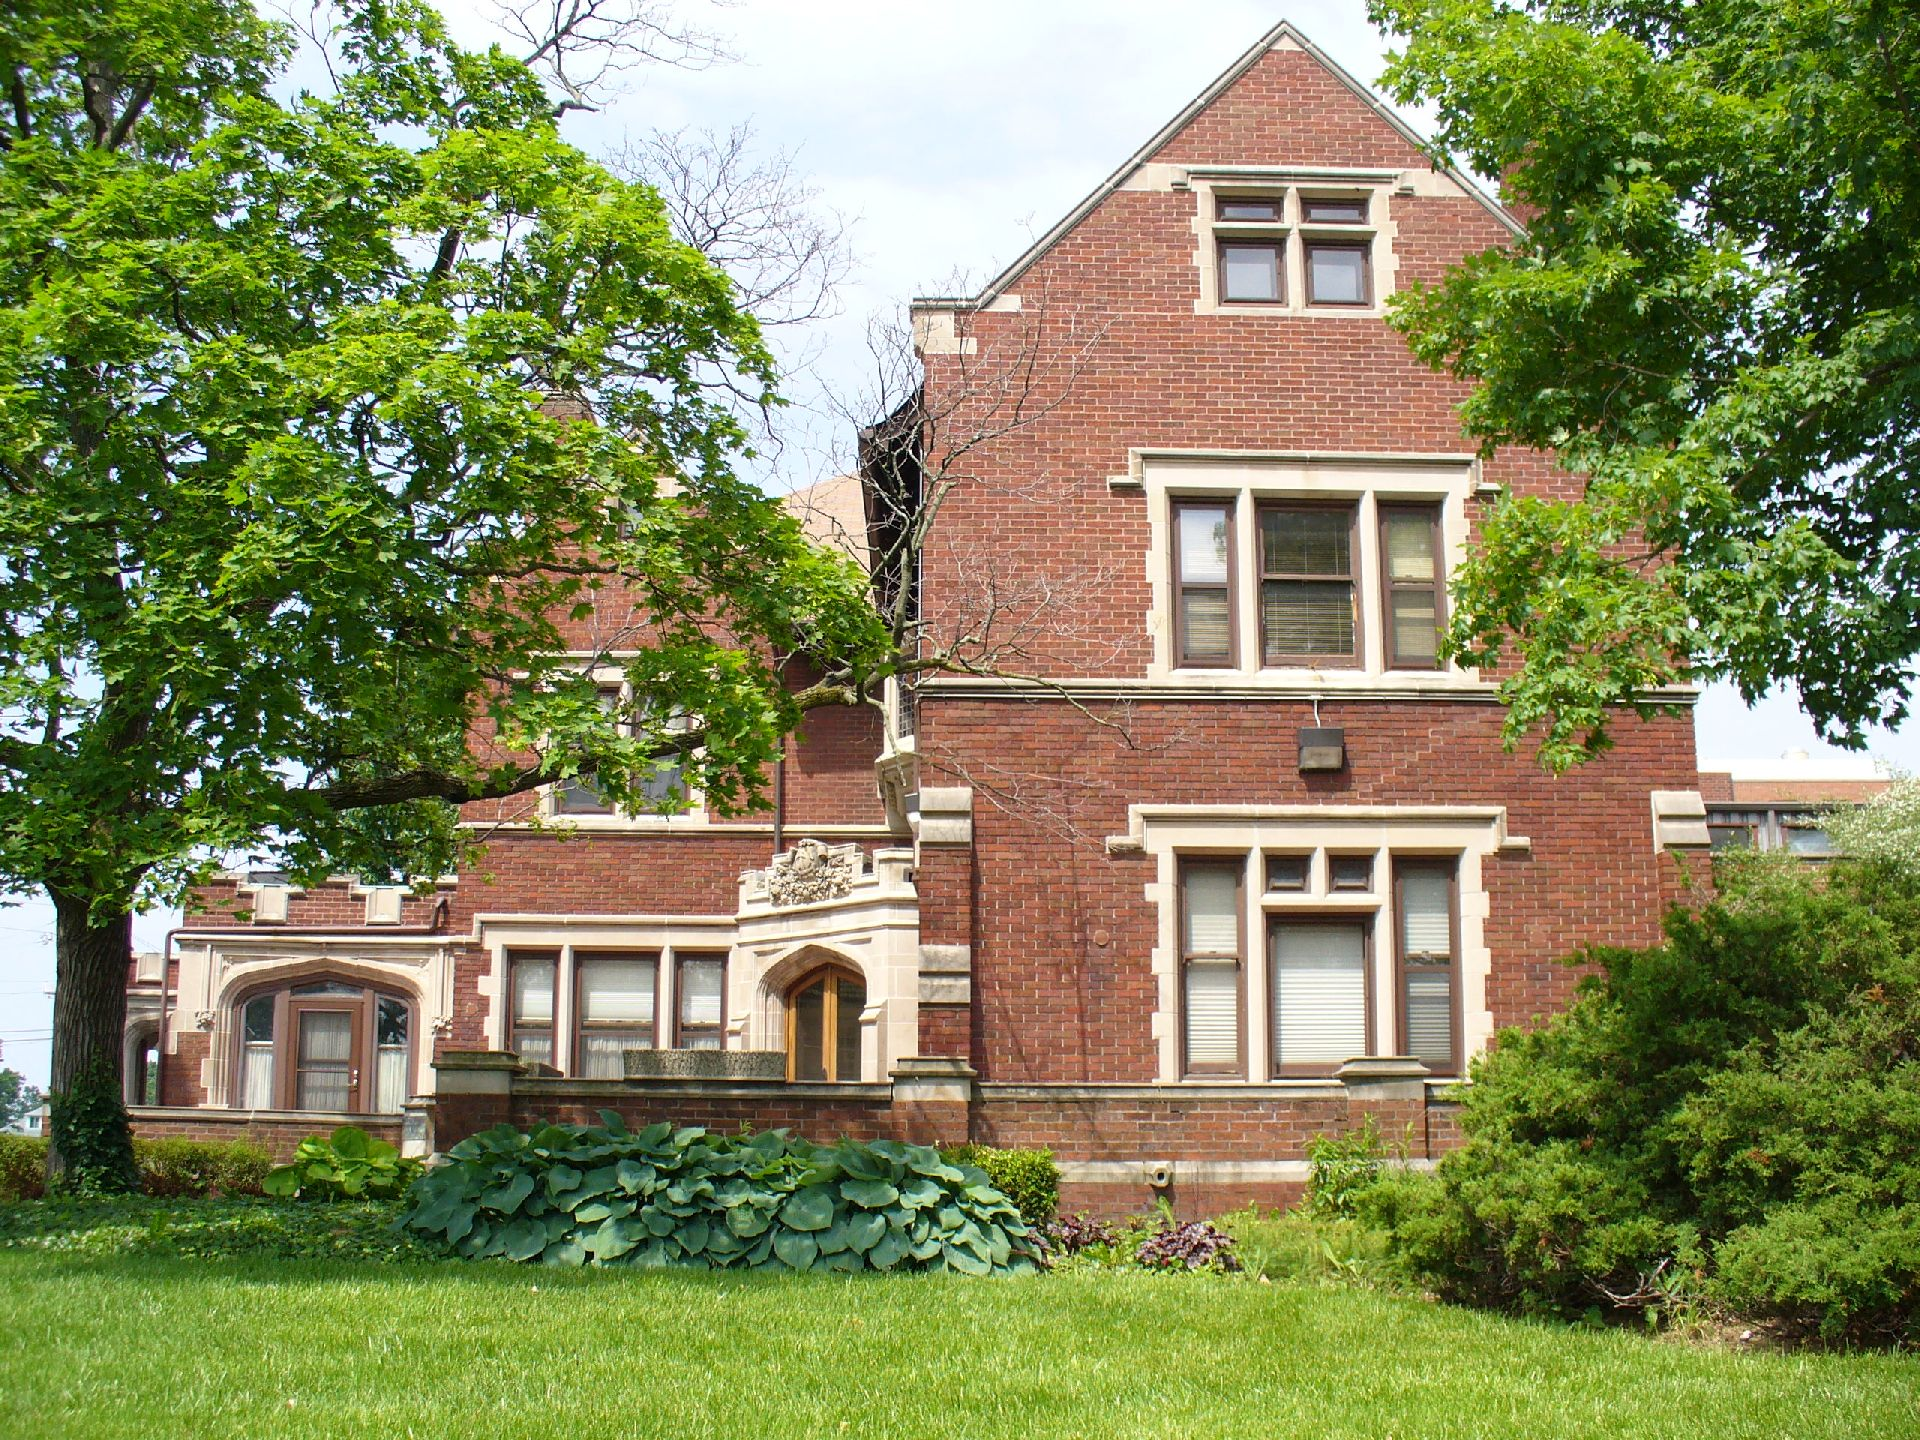 Glossbrenner mansion